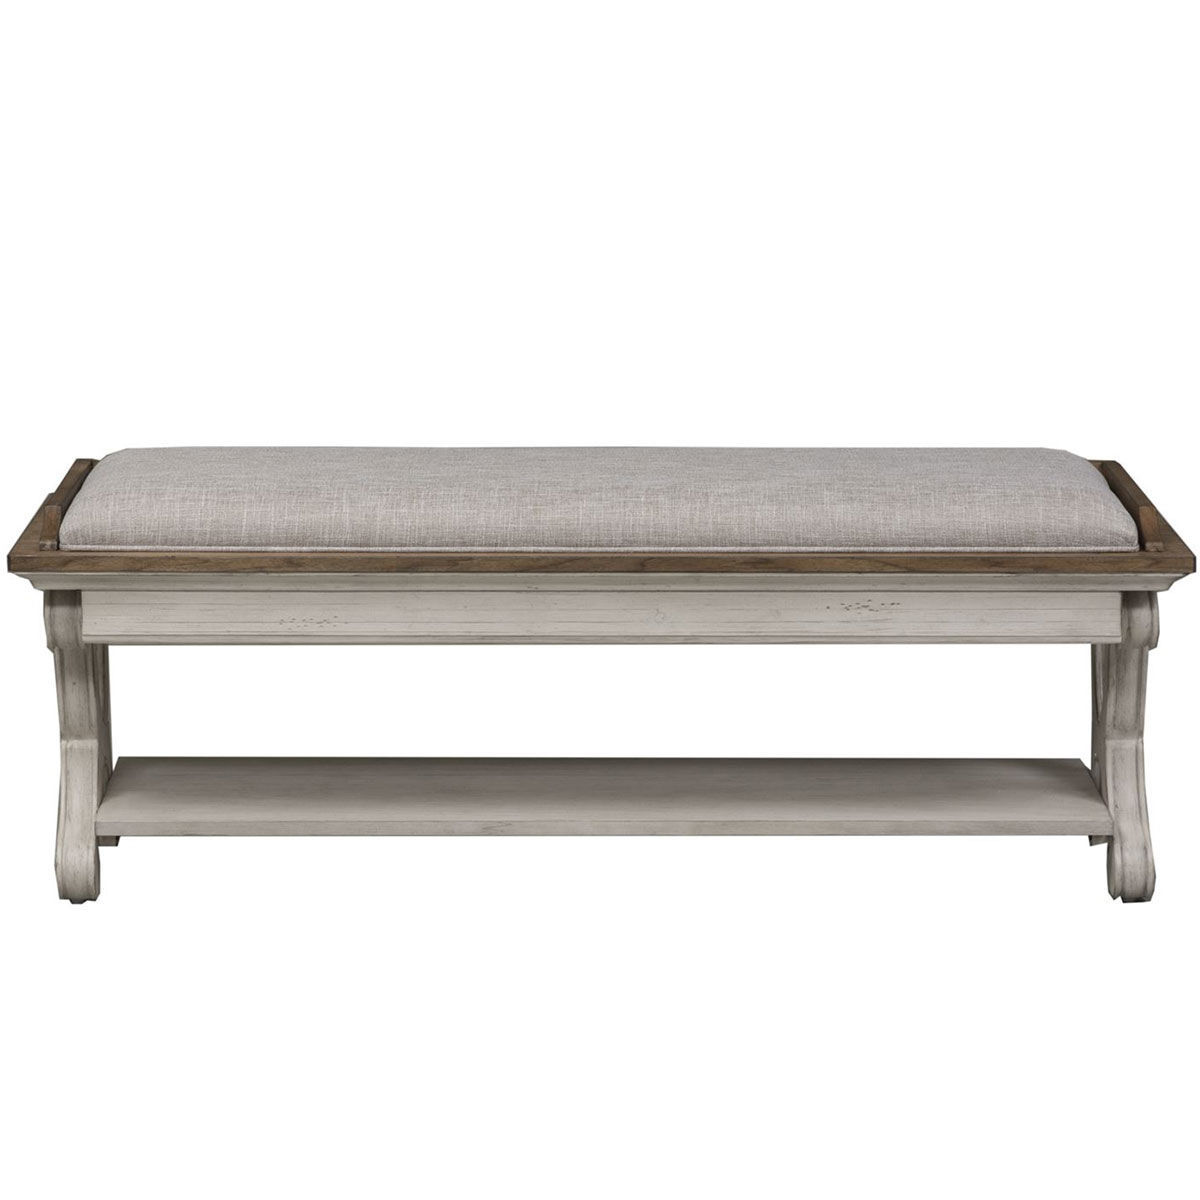 Picture of ROANOAK BED BENCH